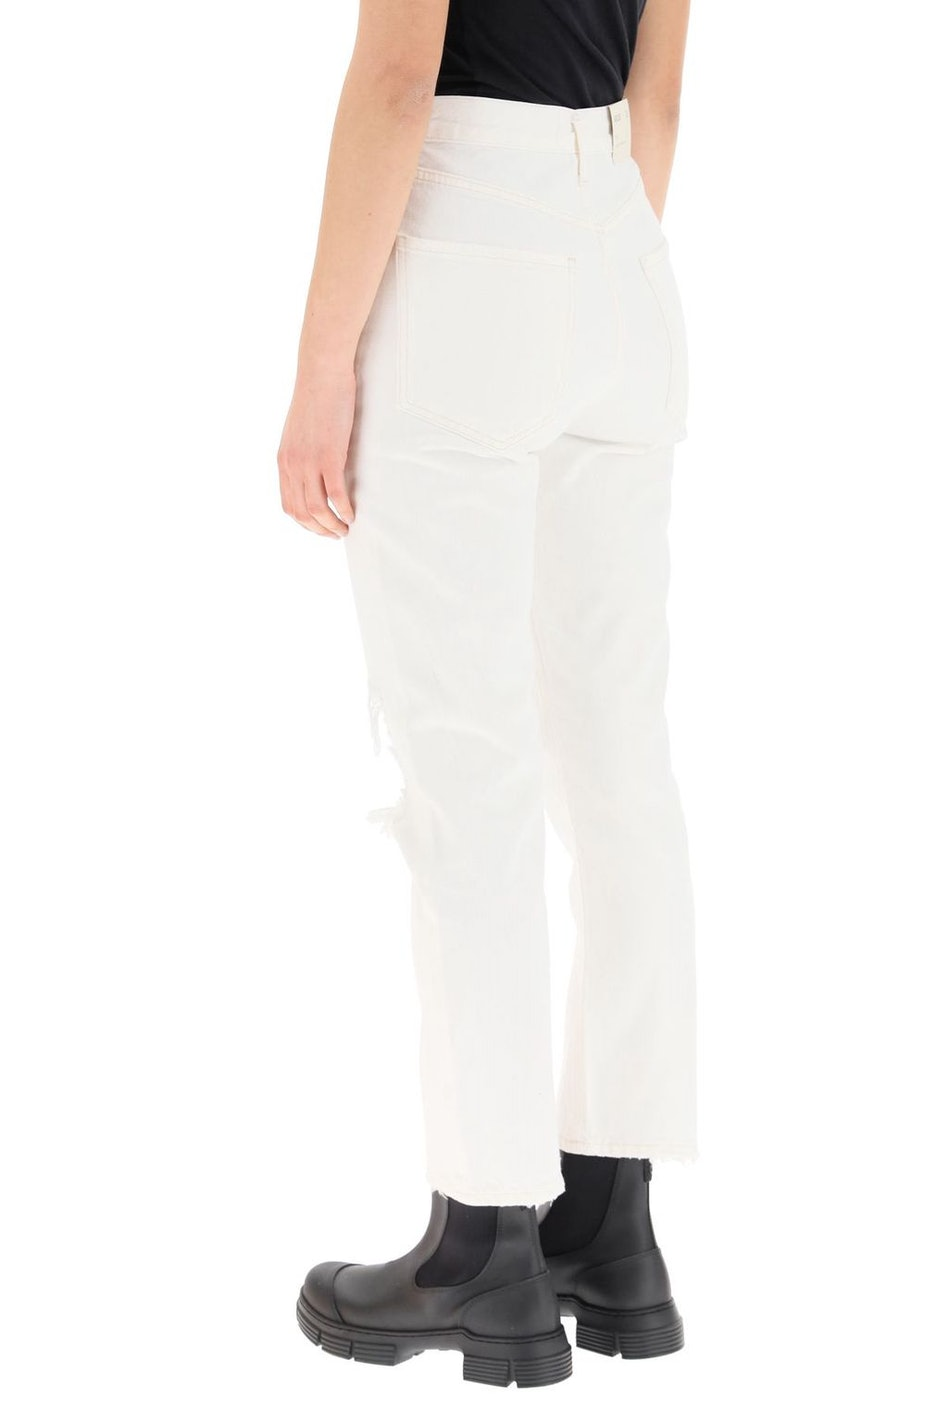 Agolde Riley High Rise Straight Crop Jeans: image 1